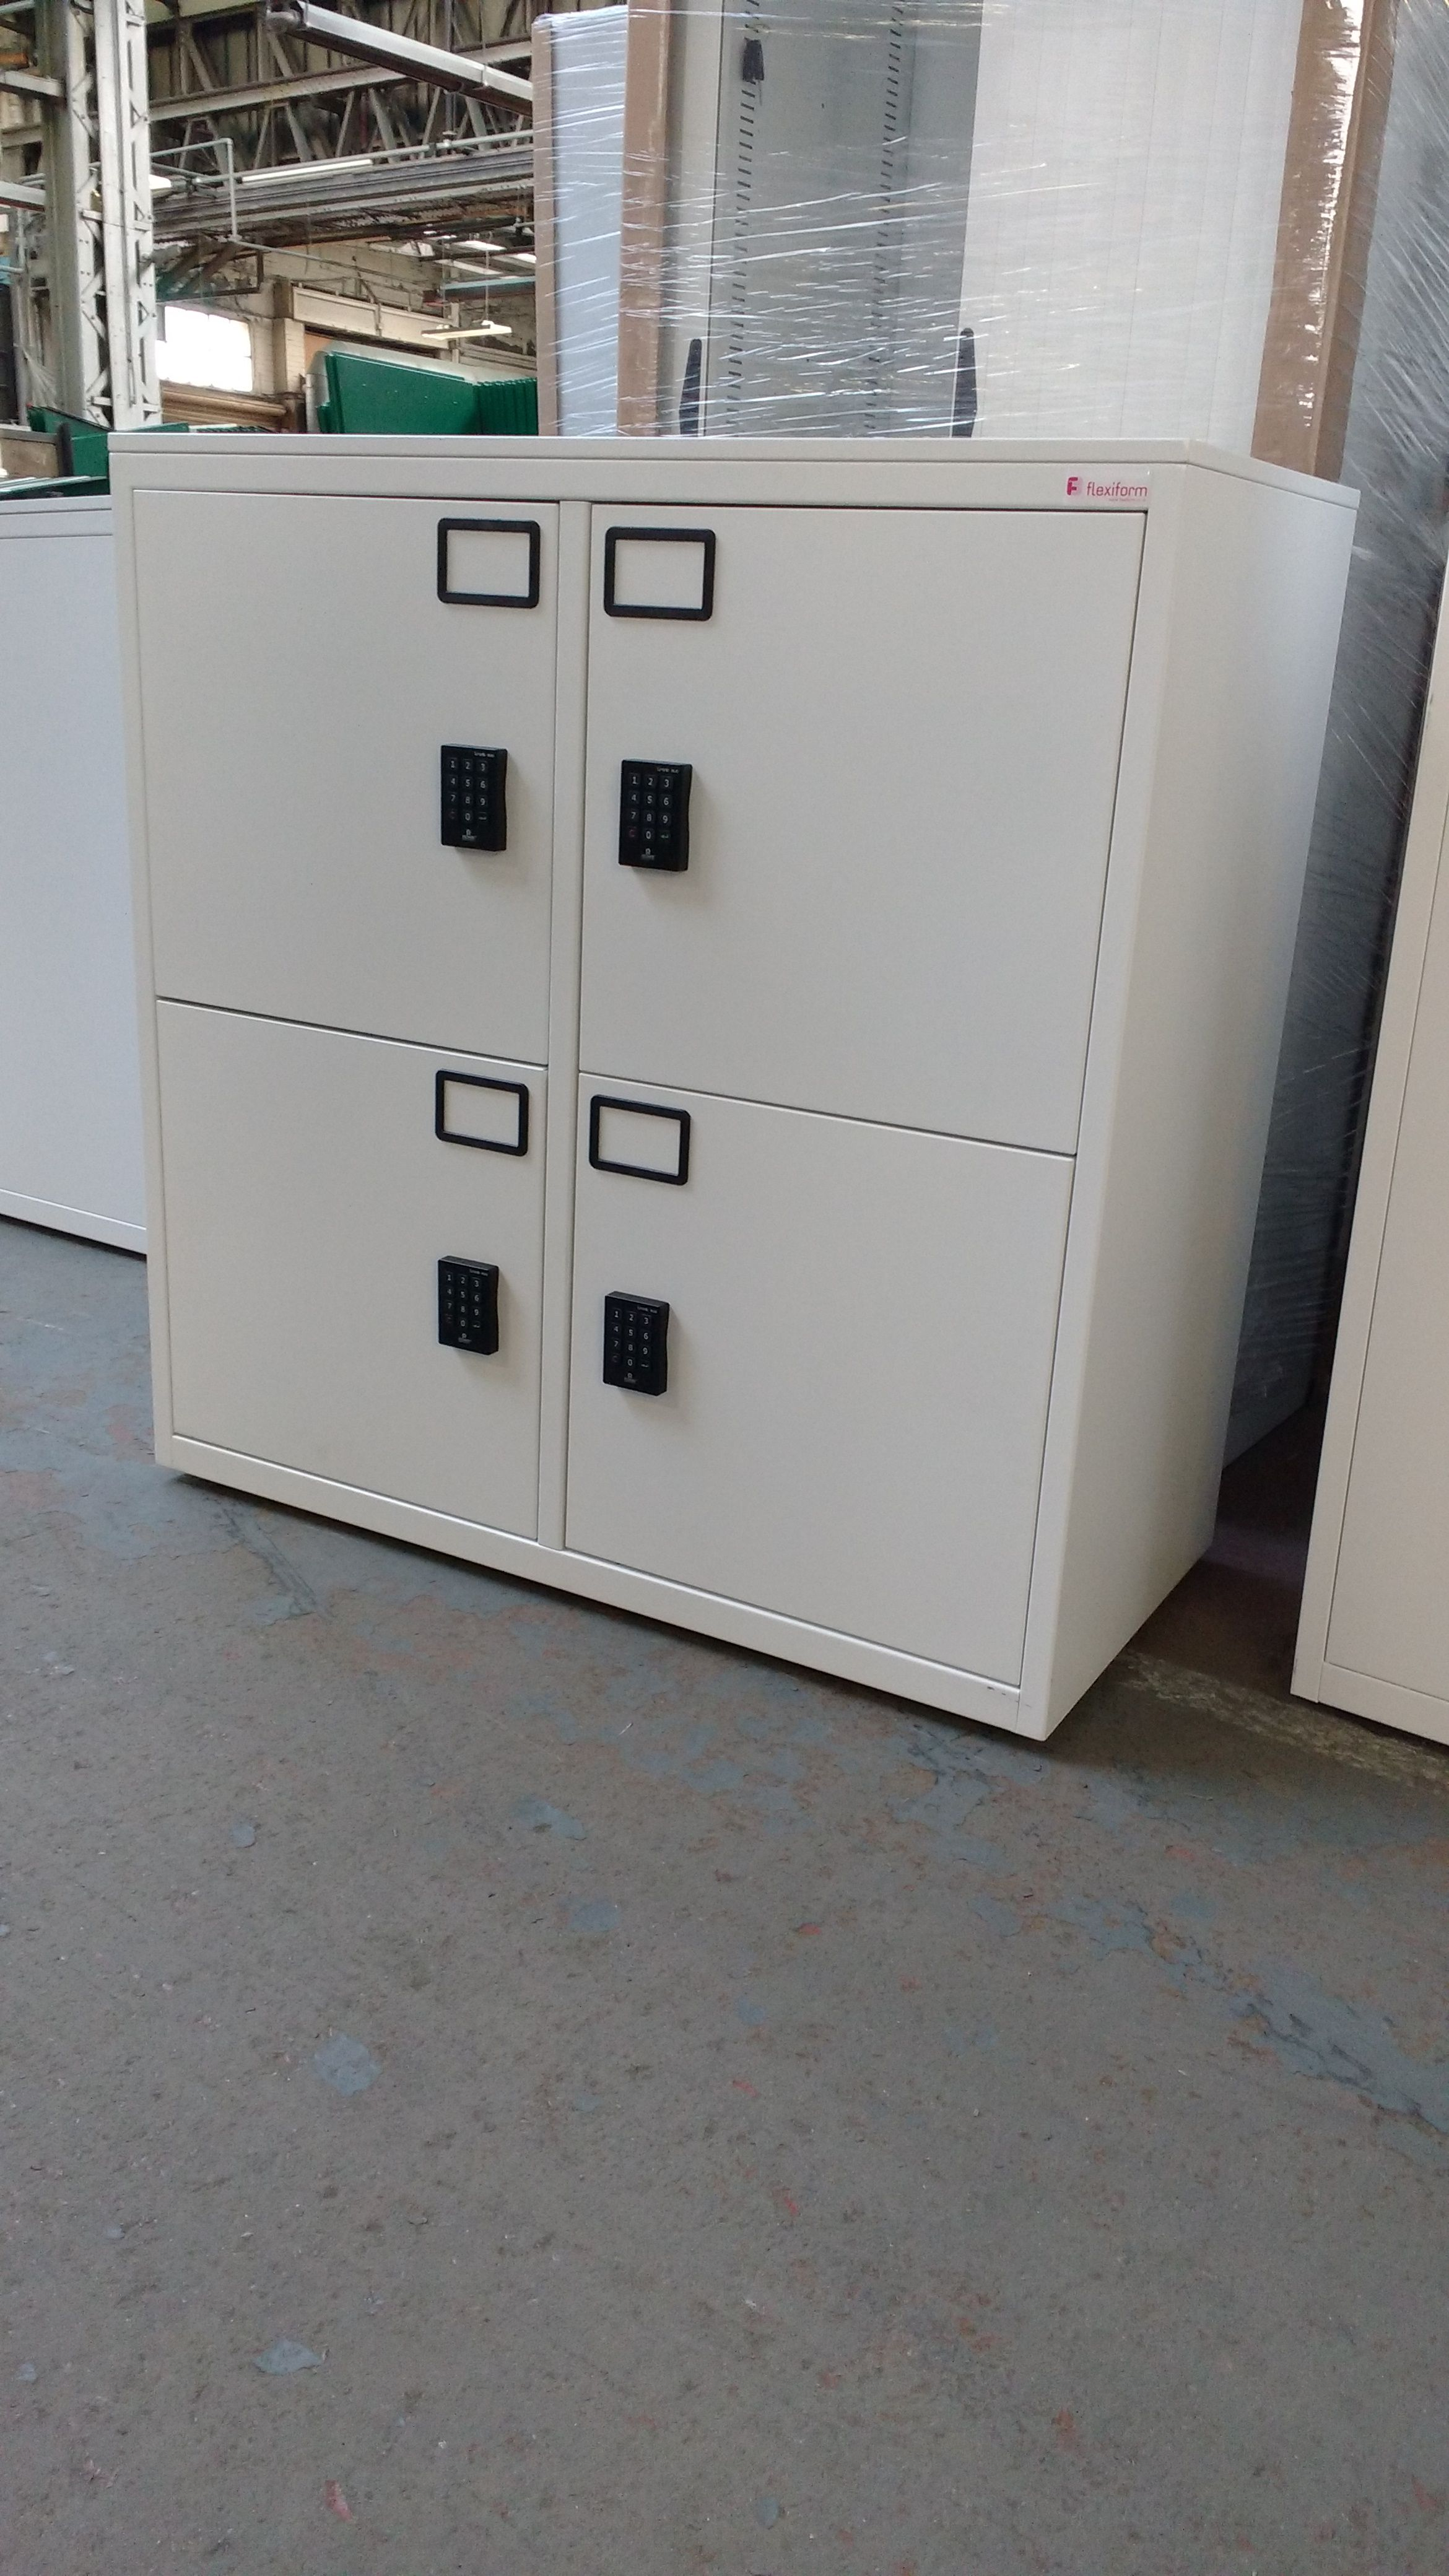 Park Art My WordPress Blog_How To Pick A File Cabinet Lock With Bobby Pin